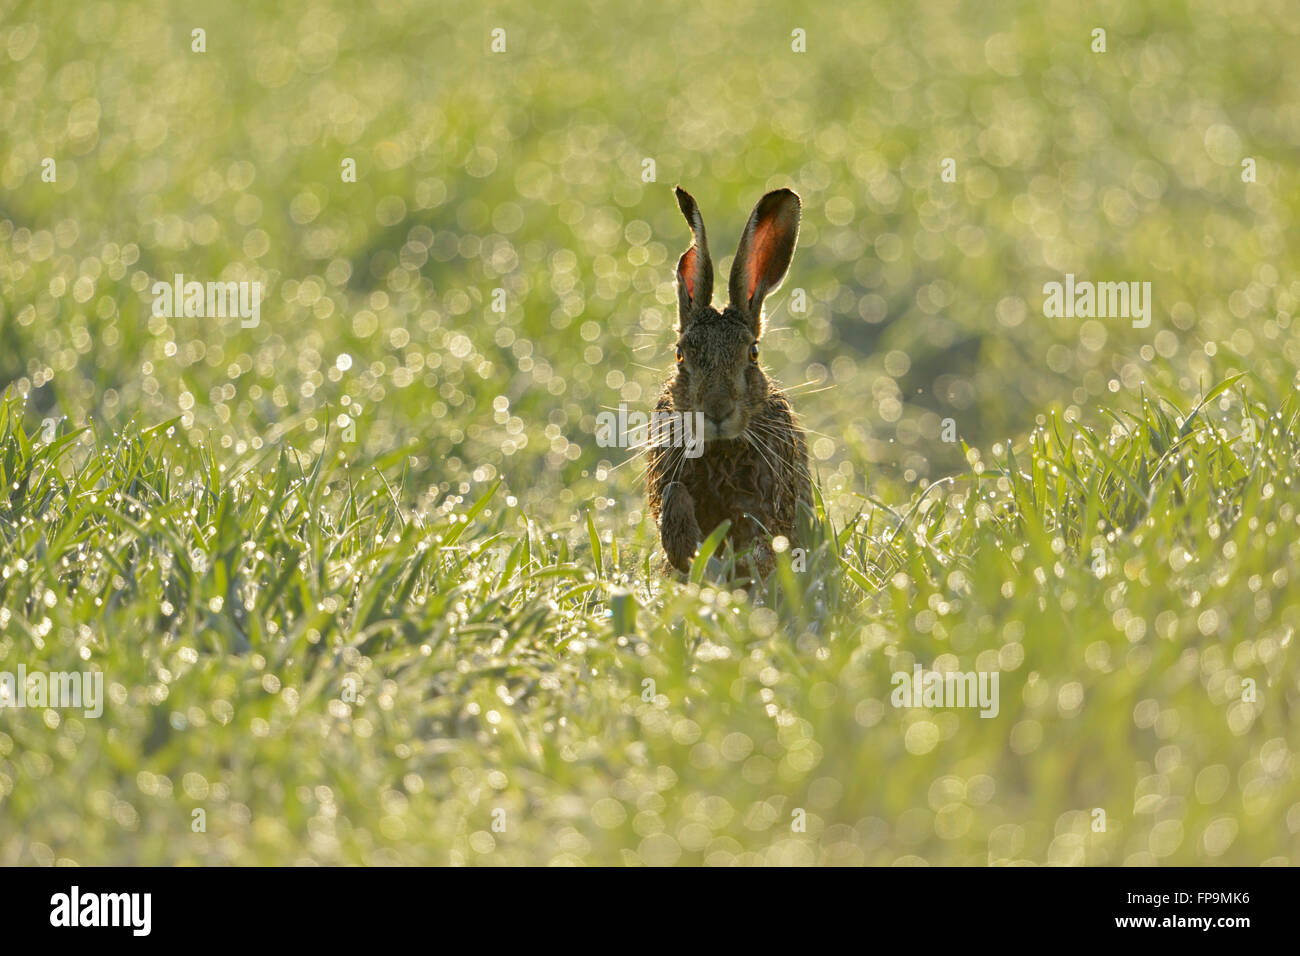 Brown Hare / European Hare  ( Lepus europaeus ) jumps through sparkling pearls over dew wet grass, frontal view, - Stock Image